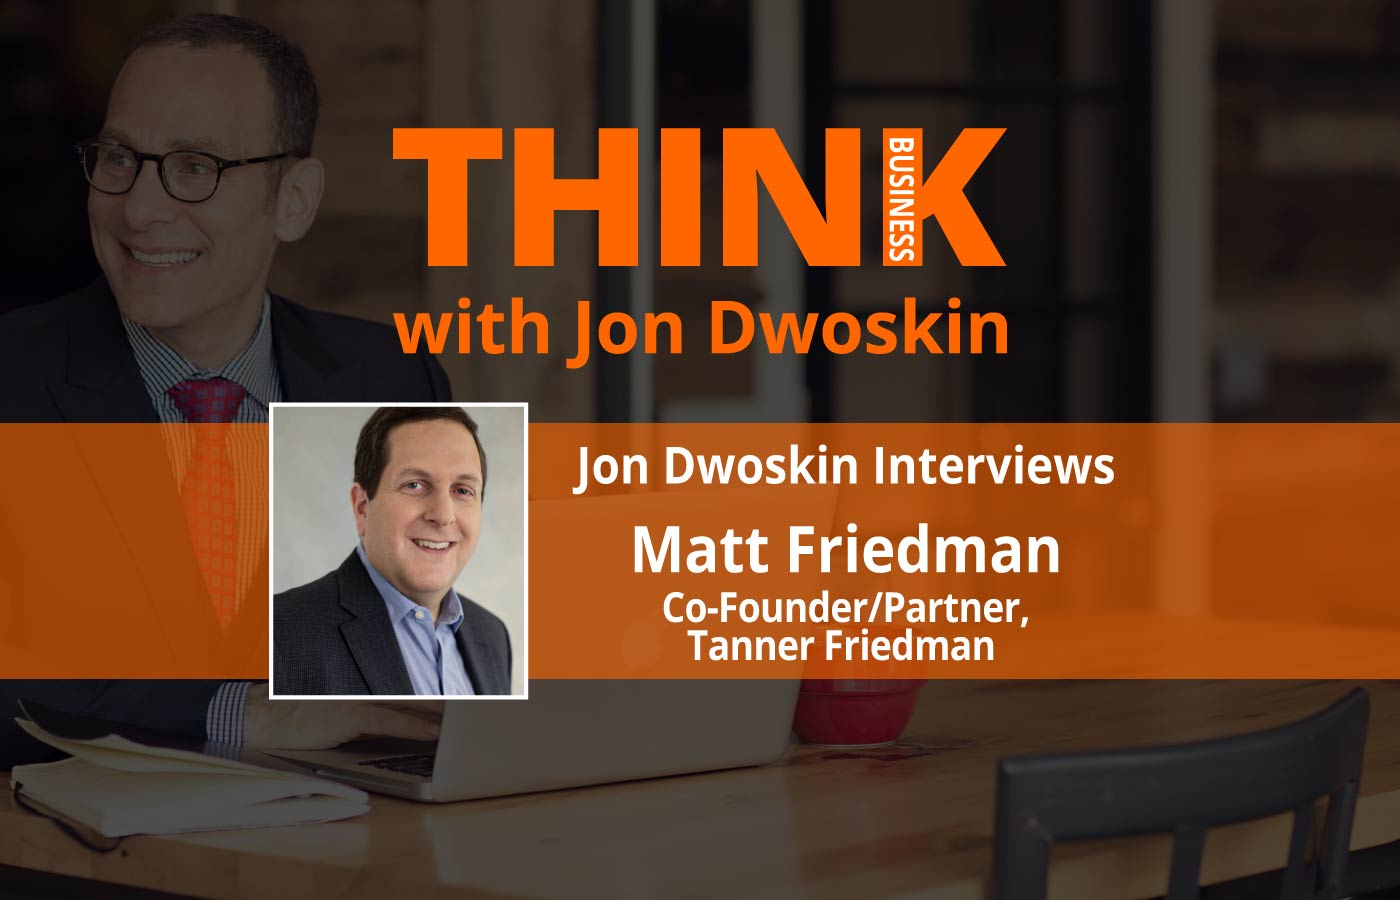 THINK Business: Jon Dwoskin Interviews Matt Friedman, Co-Founder/Partner, Tanner Friedman